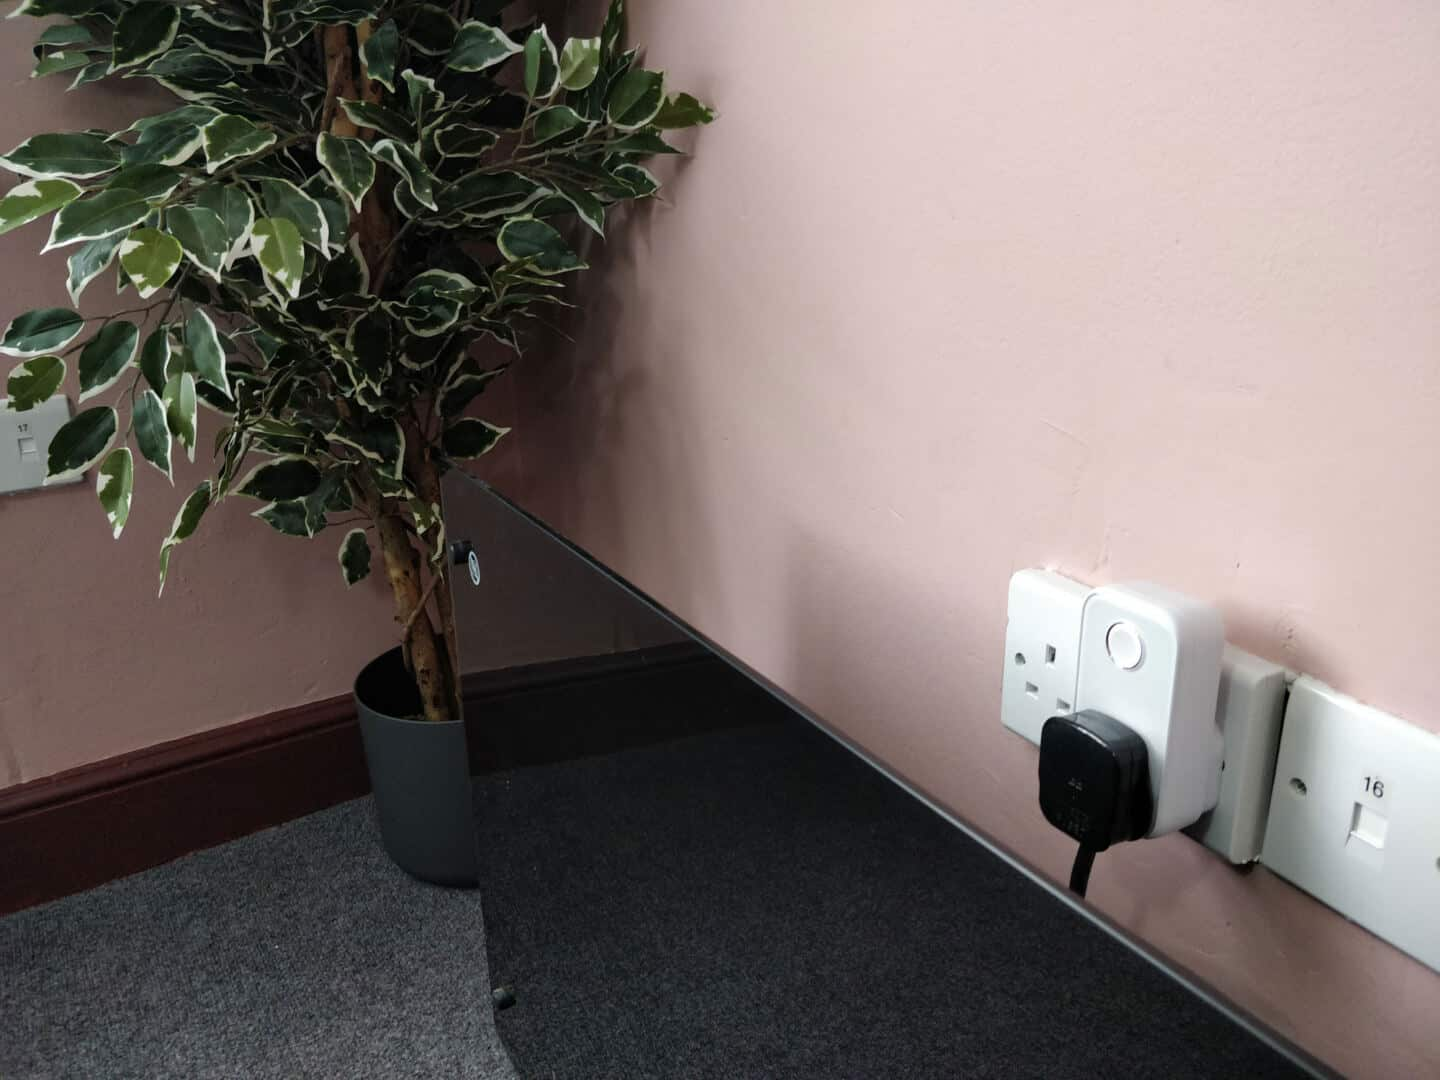 Hive active plug can be used to control your electric heating in a smart office